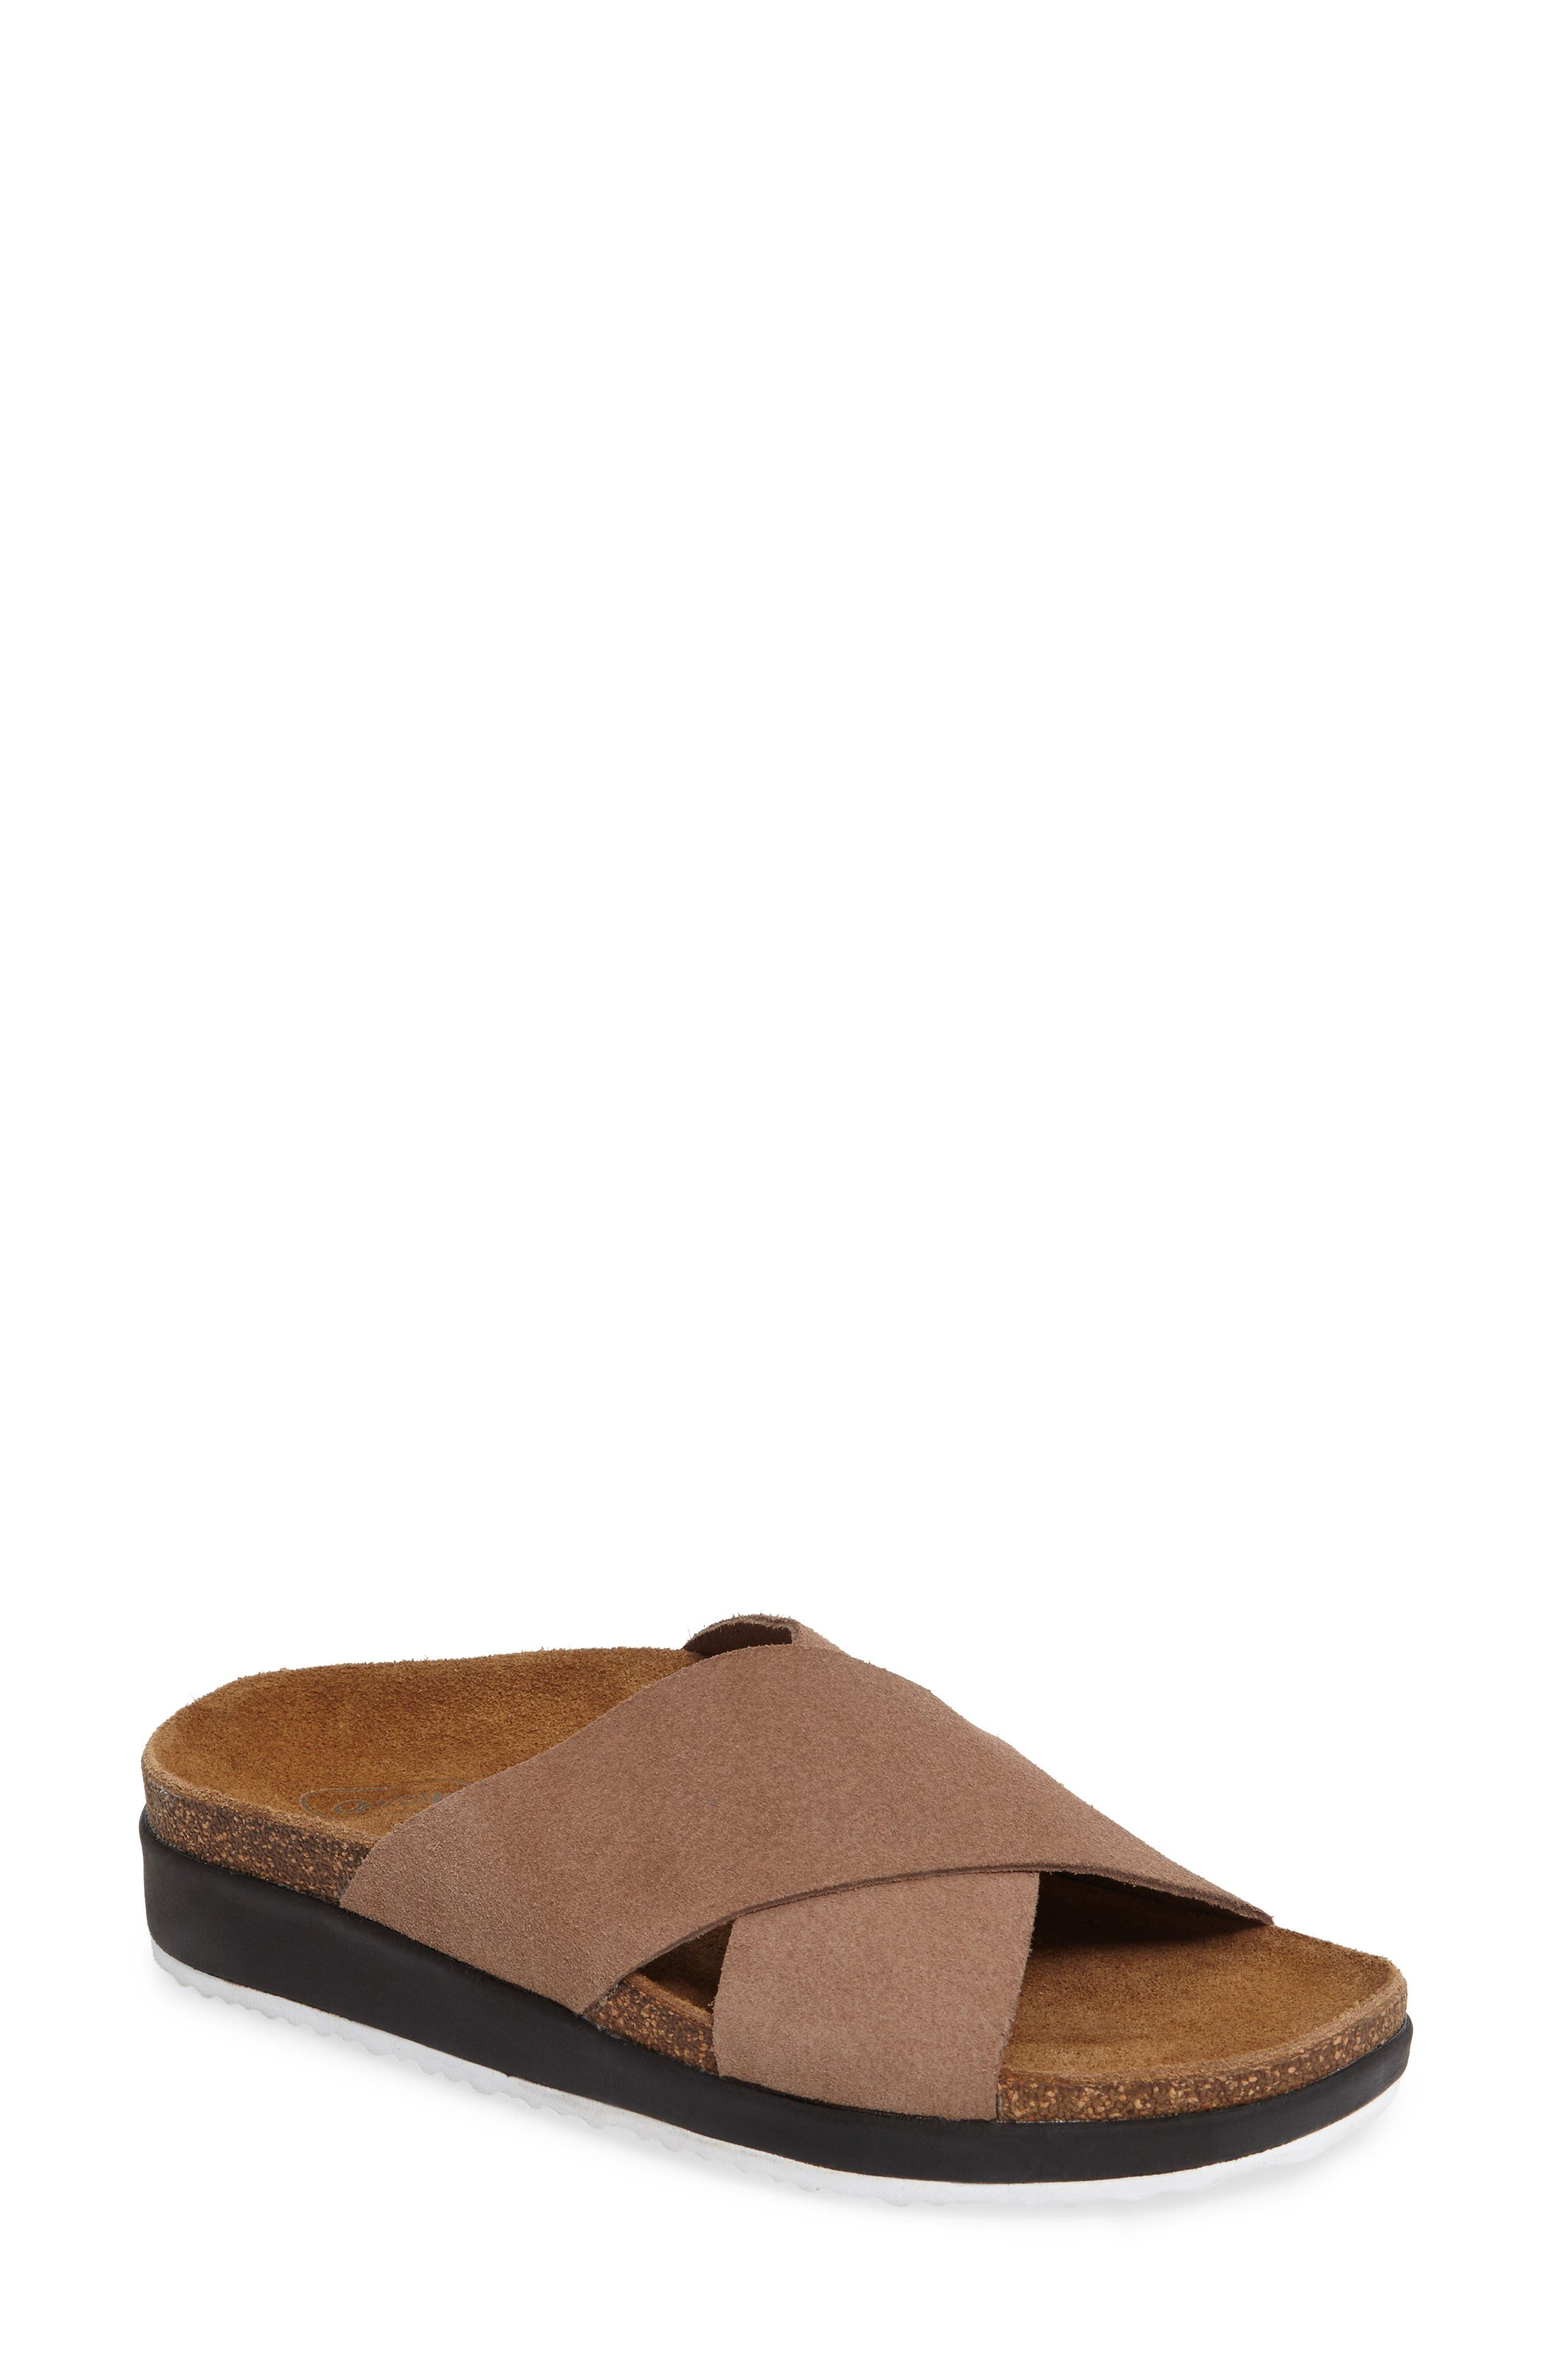 Dawn Slide Sandal,                         Main,                         color, Taupe Suede